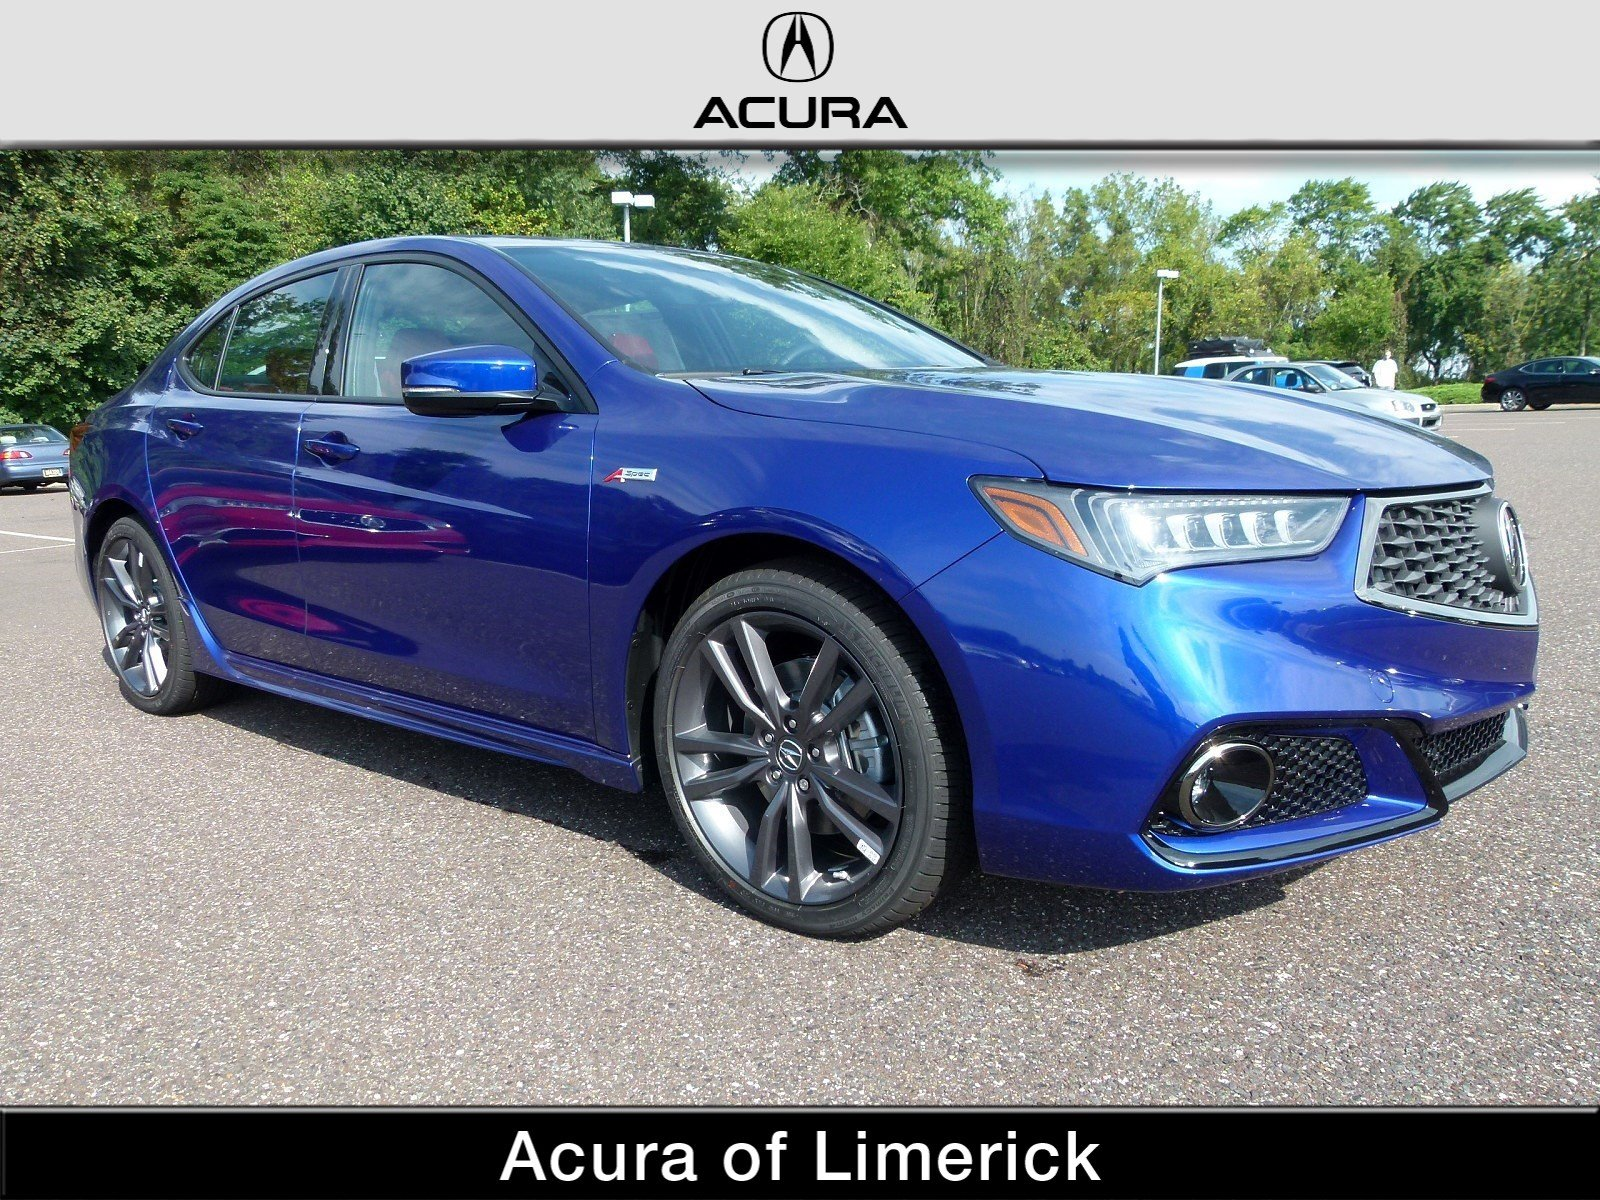 New 2019 Acura TLX 3 5 V 6 9 AT P AWS with A SPEC RED 4dr Car in